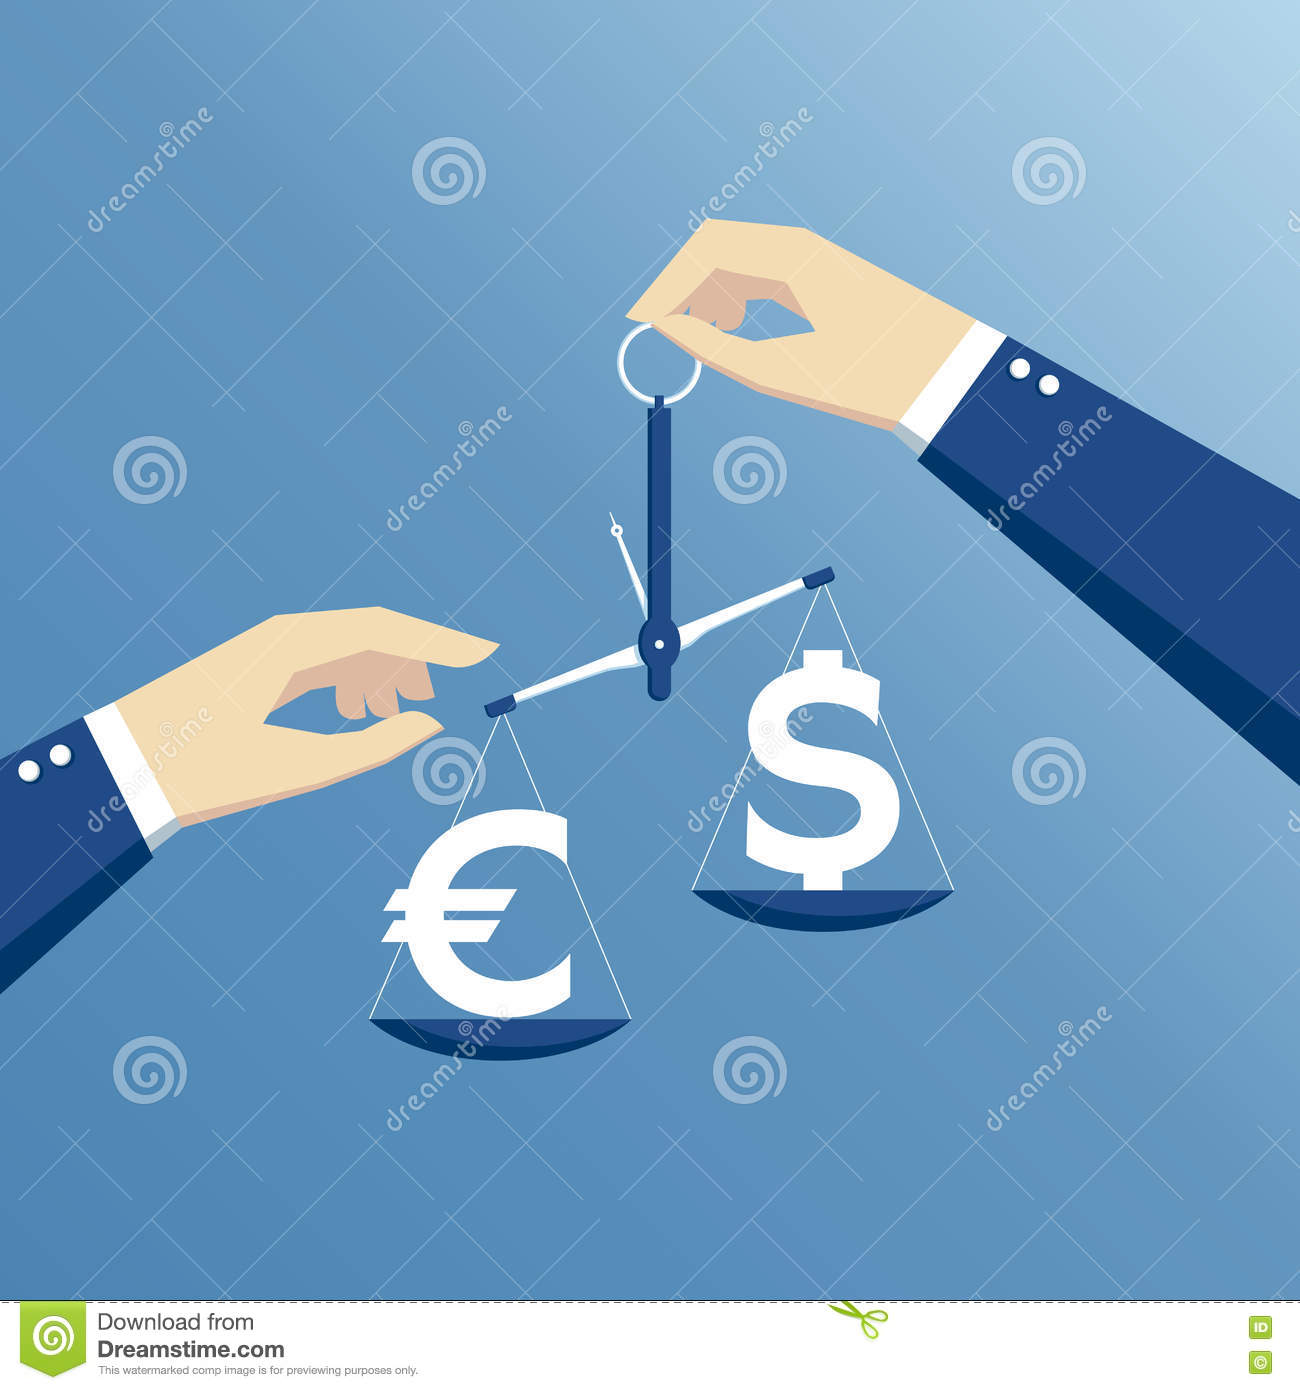 Conversion Euros A Libras Hands Cartoons Illustrations And Vector Stock Images